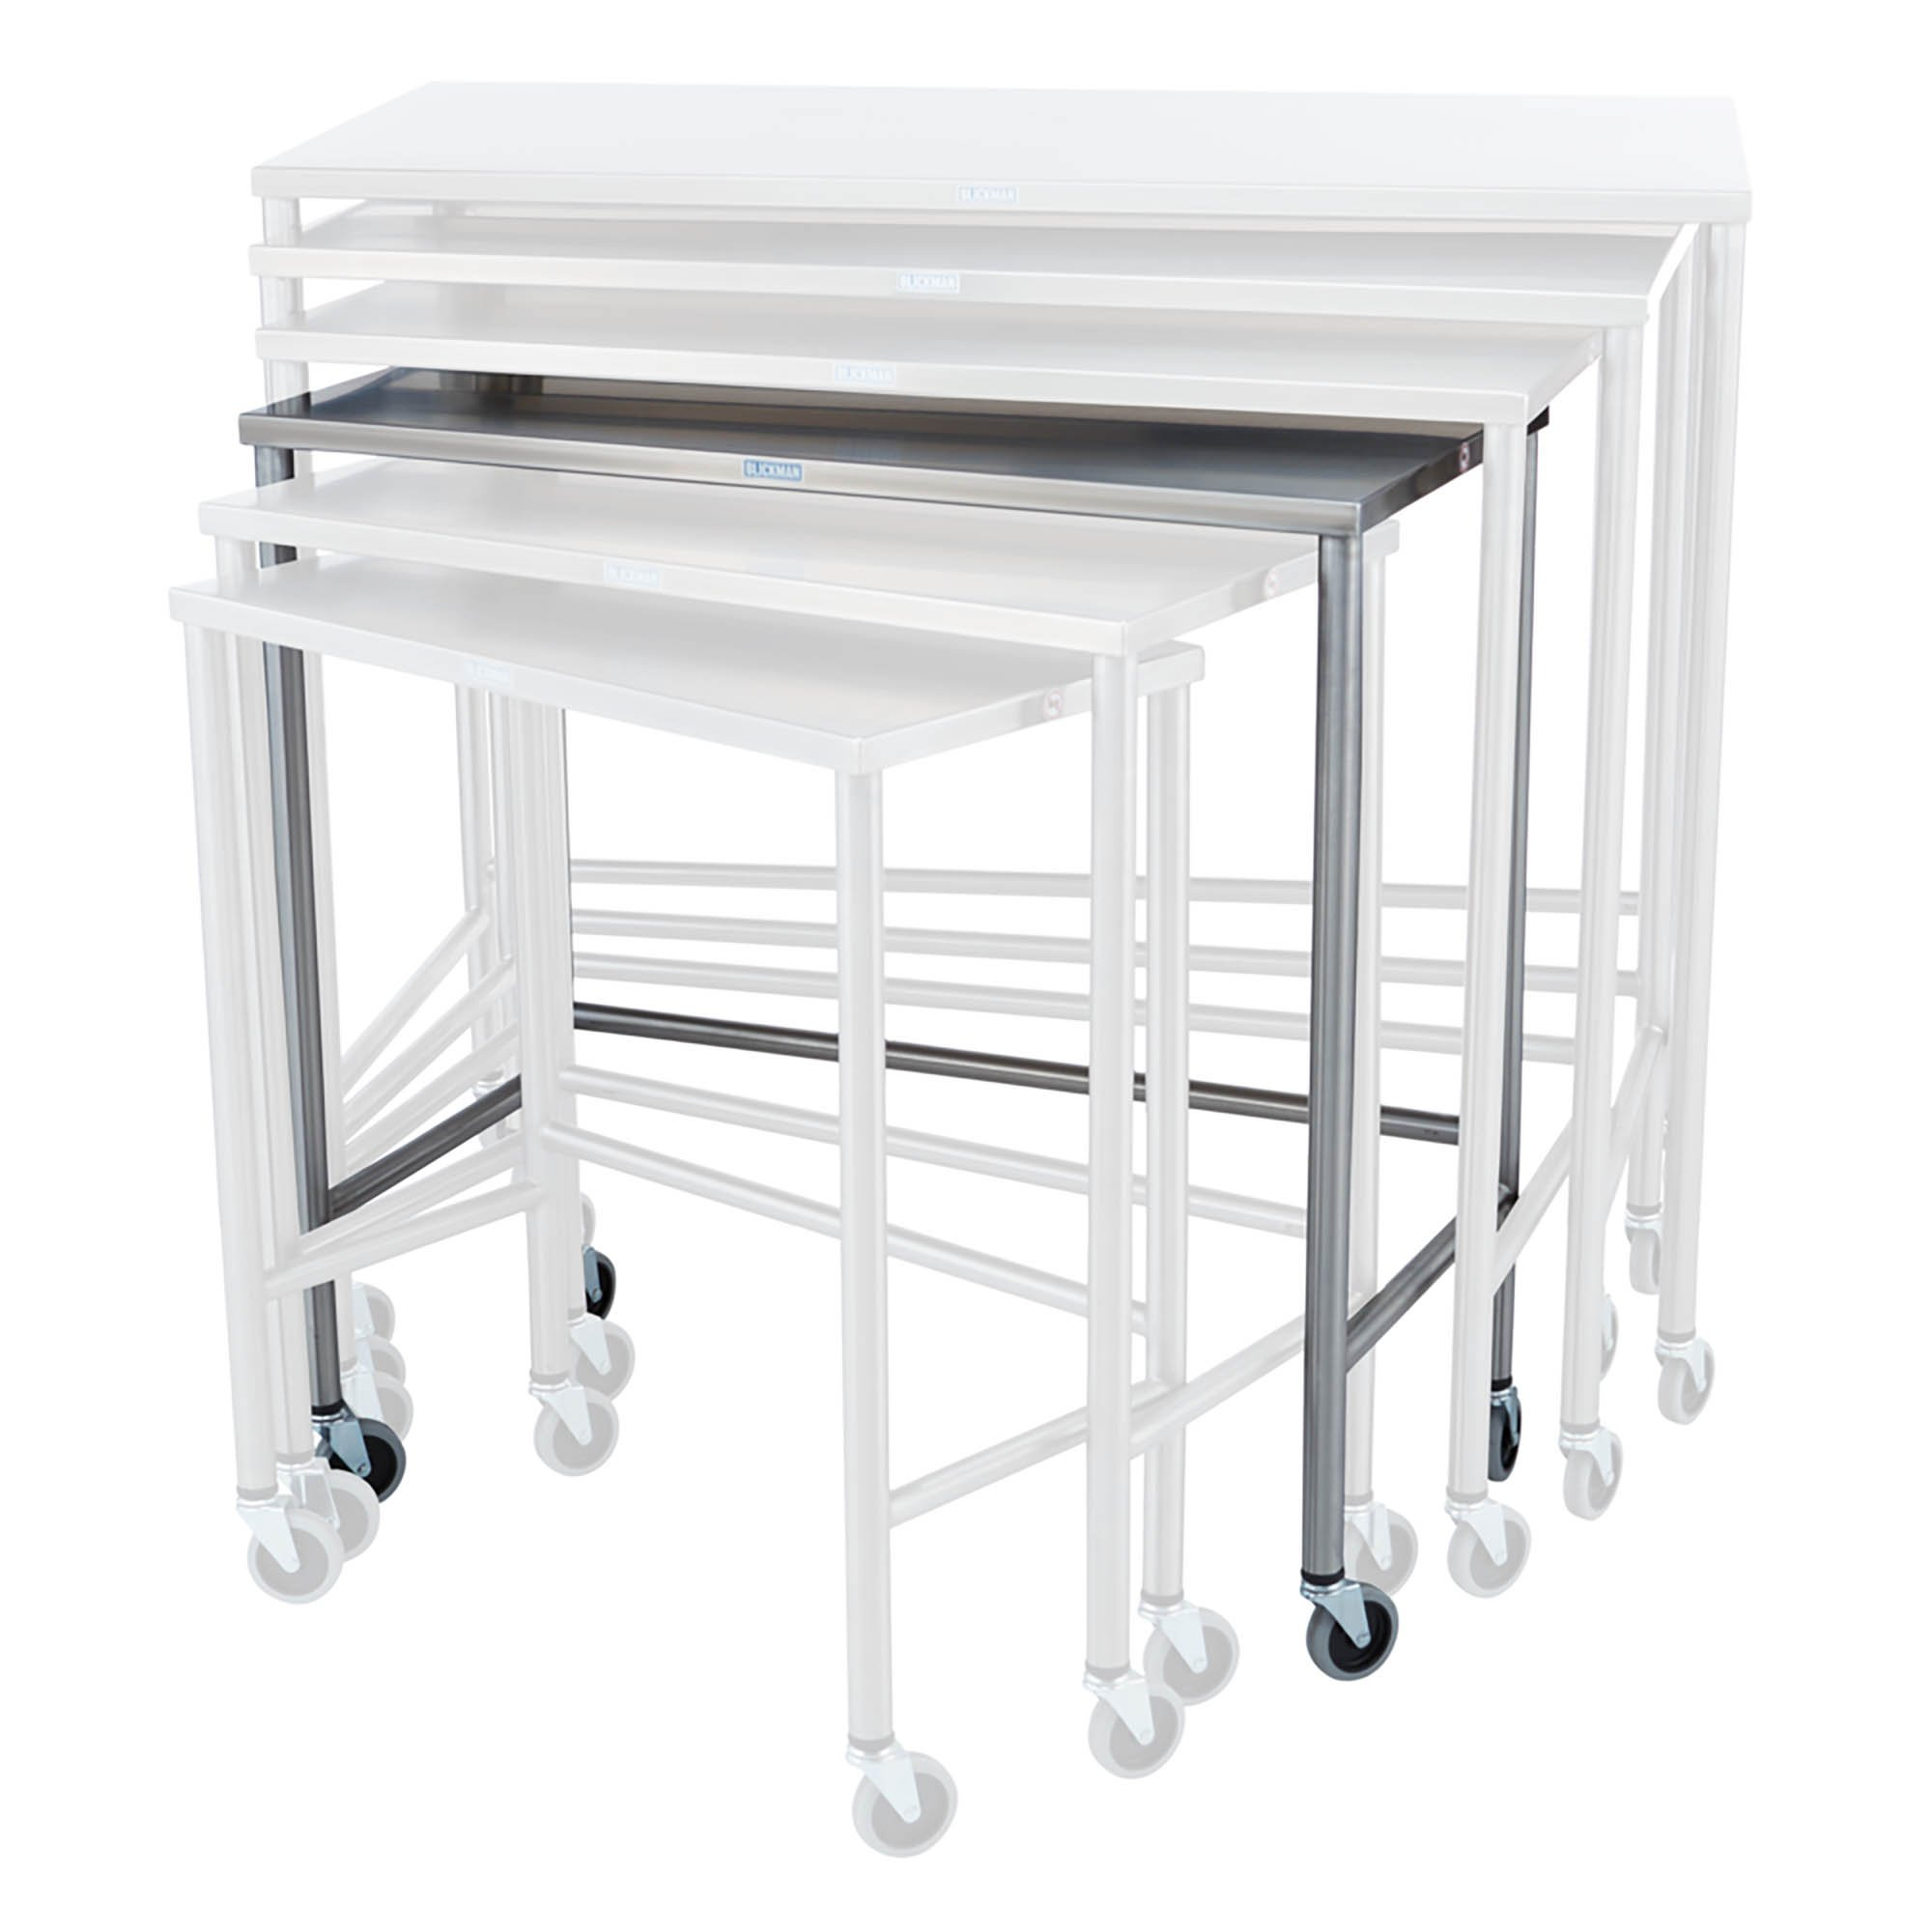 Nested Instrument Table - 36